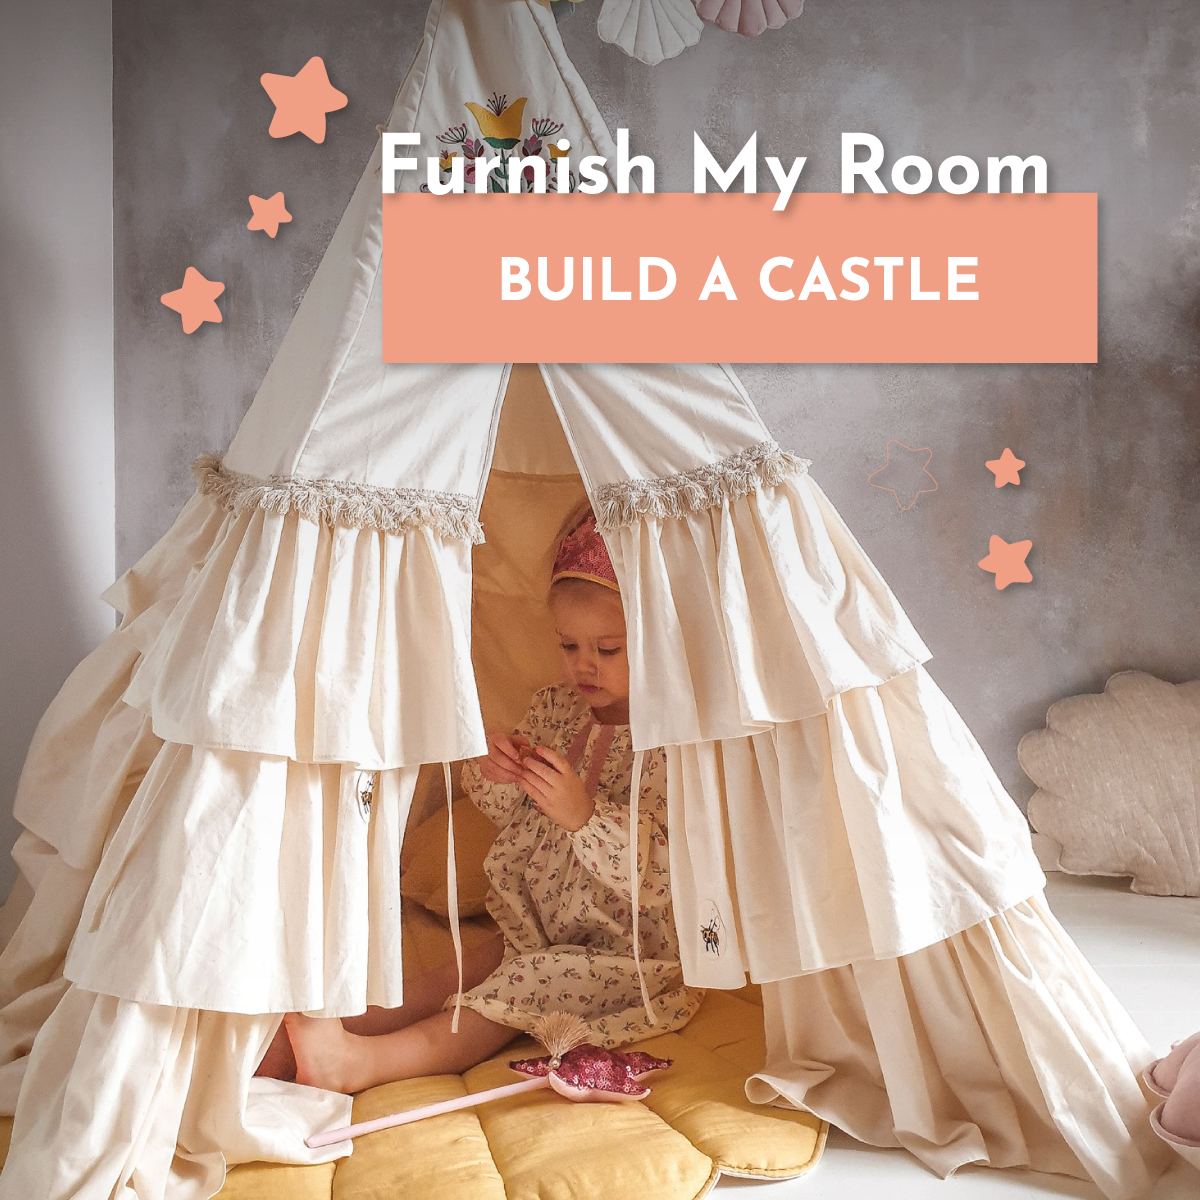 Furnish My Room - Whimsy Castle: A collaboration between two great friends!